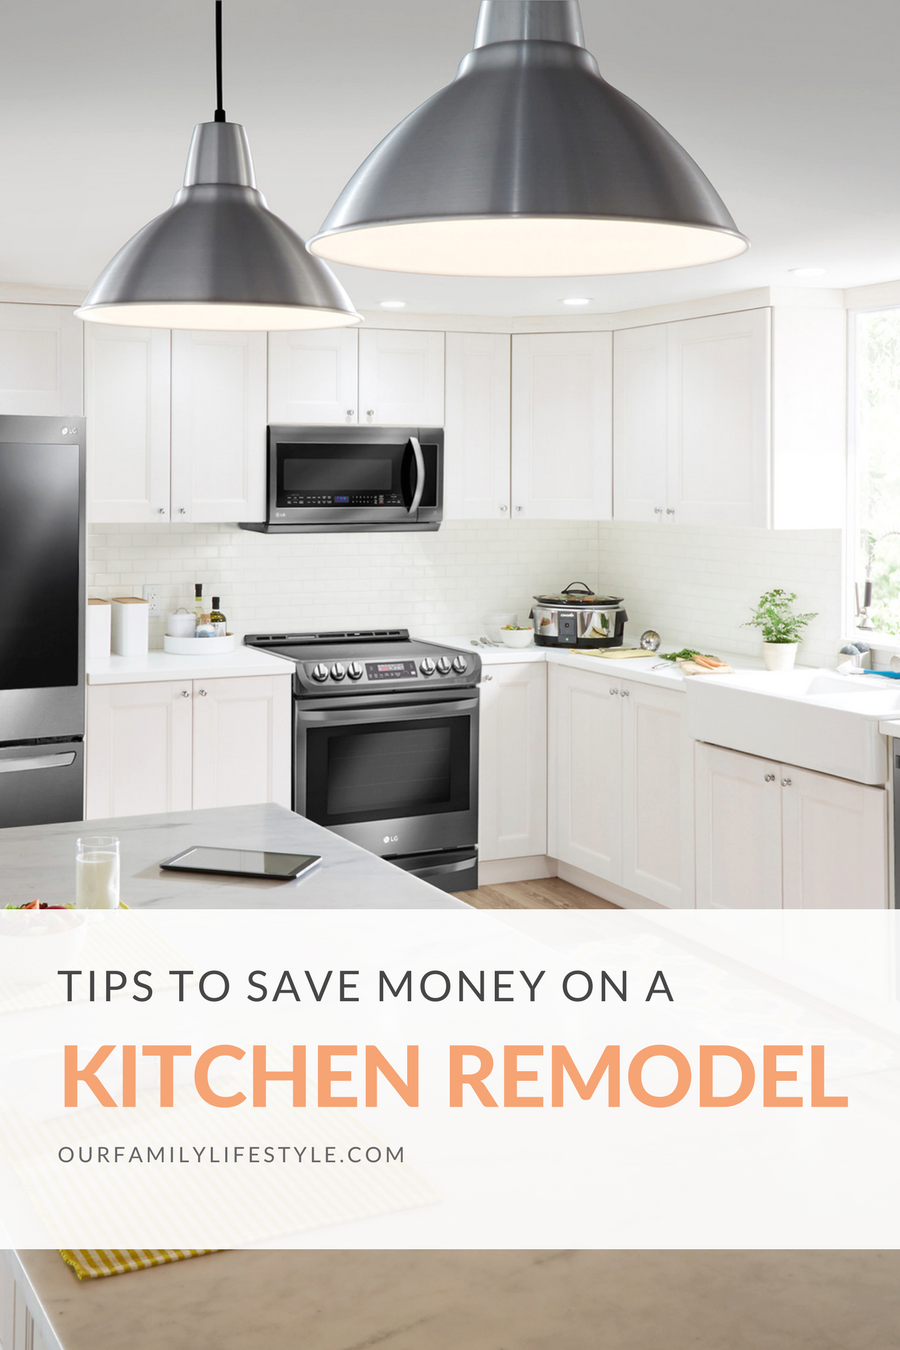 Where Your Money Goes In A Kitchen Remodel: Tips To Save Money On A Kitchen Remodel :: Best Buy